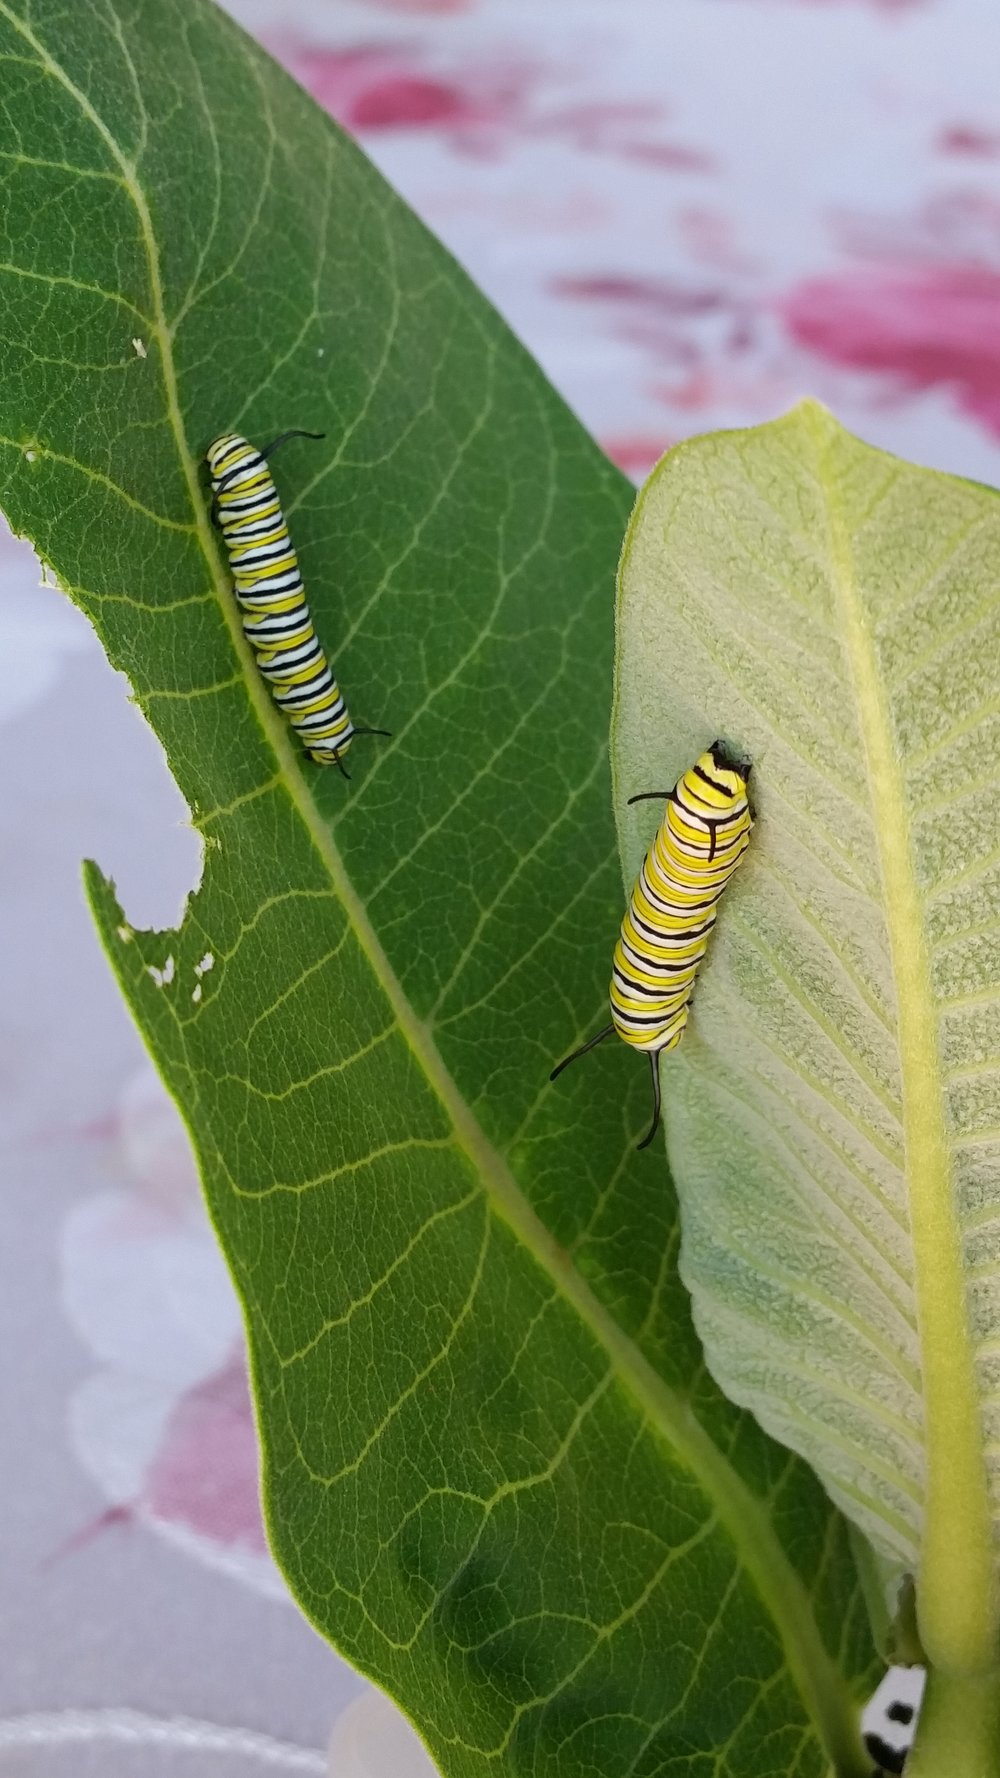 The caterpillars are busy eating during these hot days of late May in Chicago.